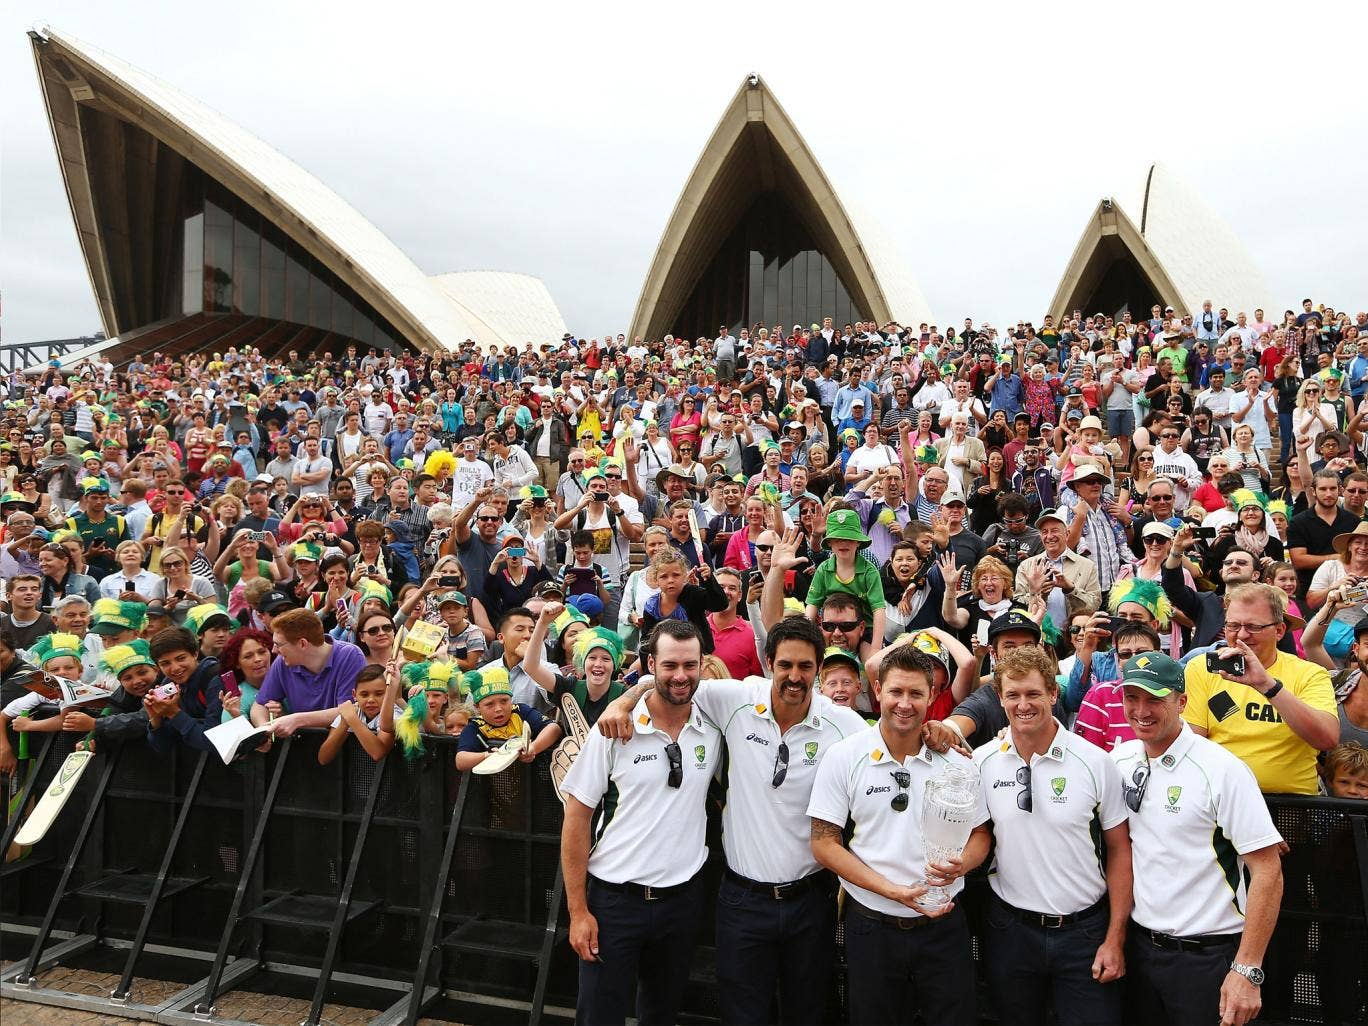 Australia's Alex Doolan, Mitchell Johnson, Michael Clarke, George Bailey and Brad Haddin celebrate their Ashes whitewash with the public in front of the Sydney Opera House